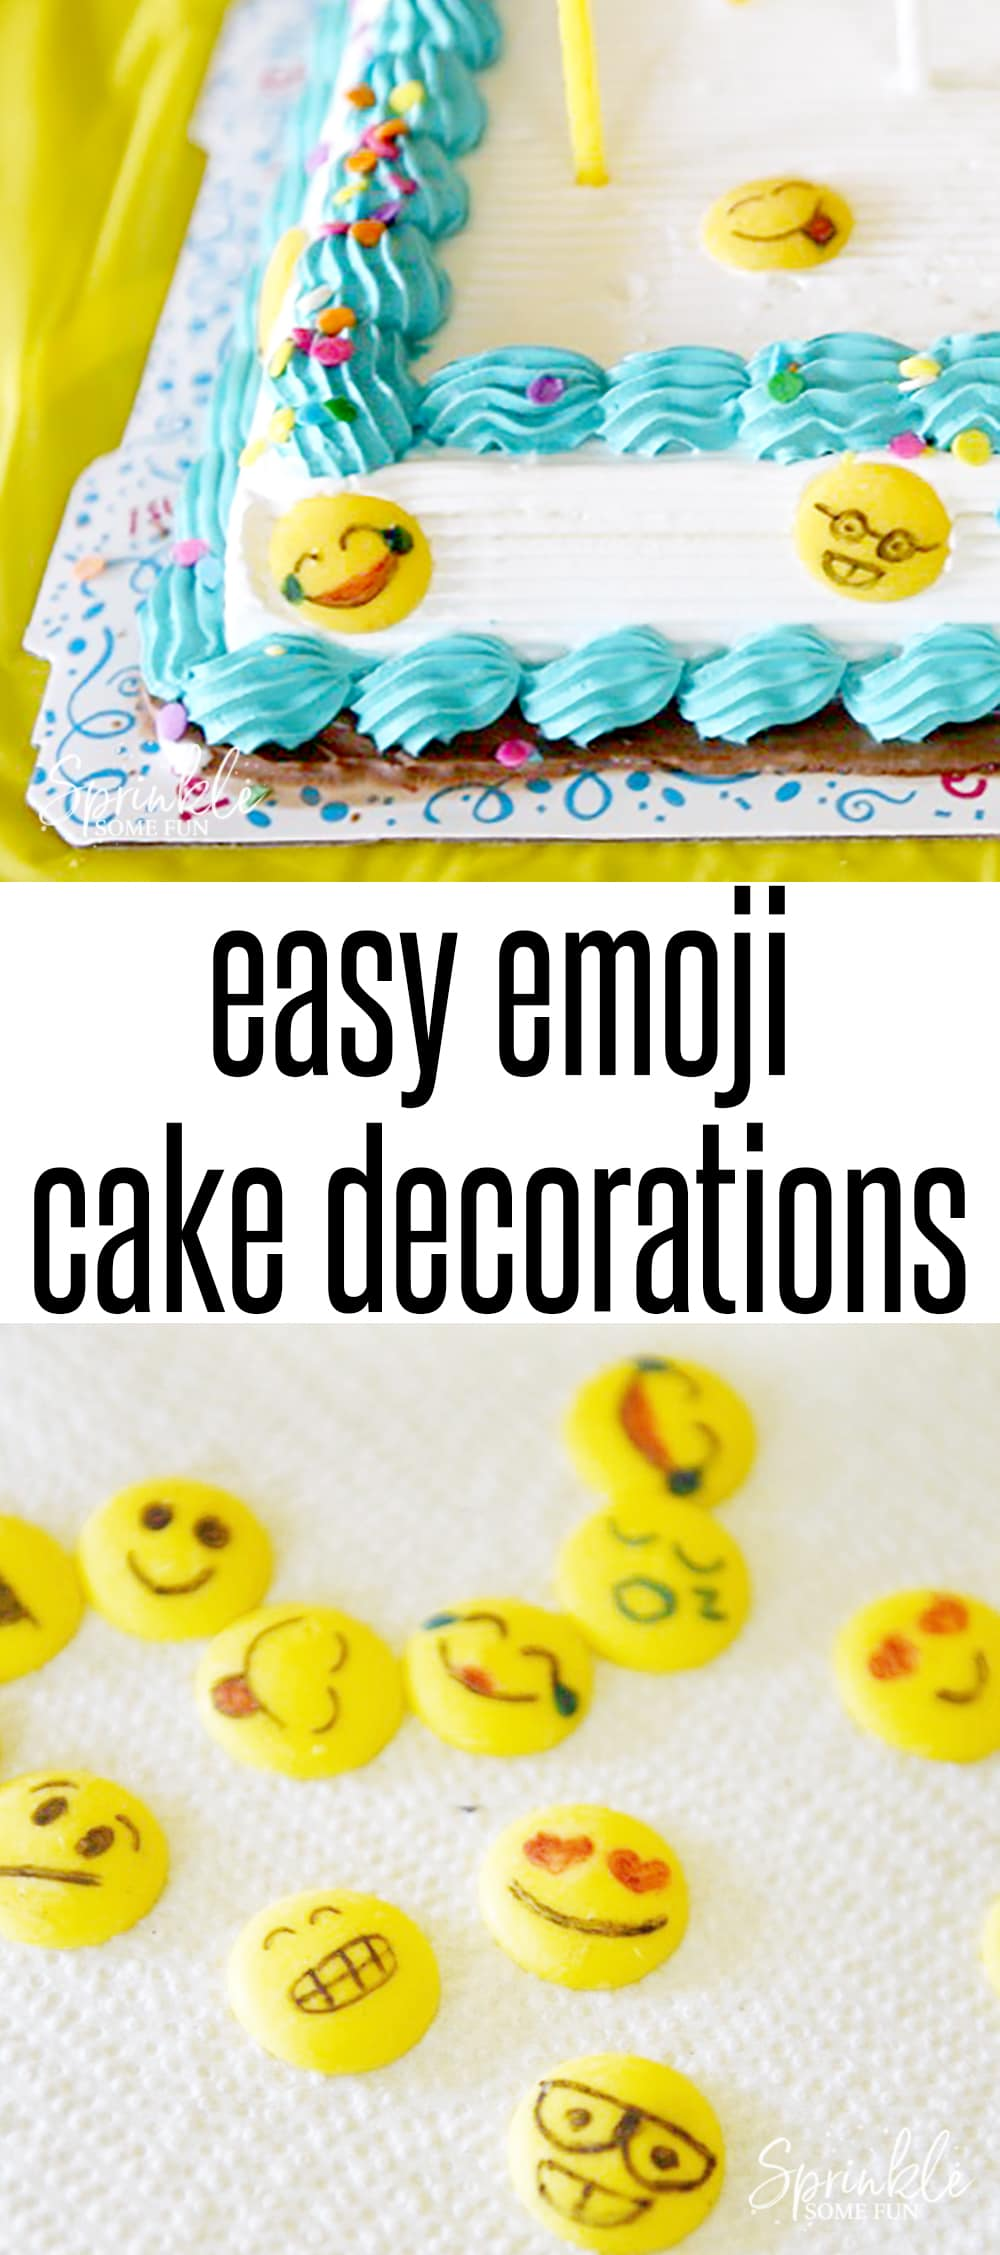 This Easy Emoji Themed Ice Cream Cake was the hit of the party and such an easy idea!  From family celebrations and cookouts to gifts and just everyday deliciousness, there's always a great reason to make people smile with an ice cream cake.